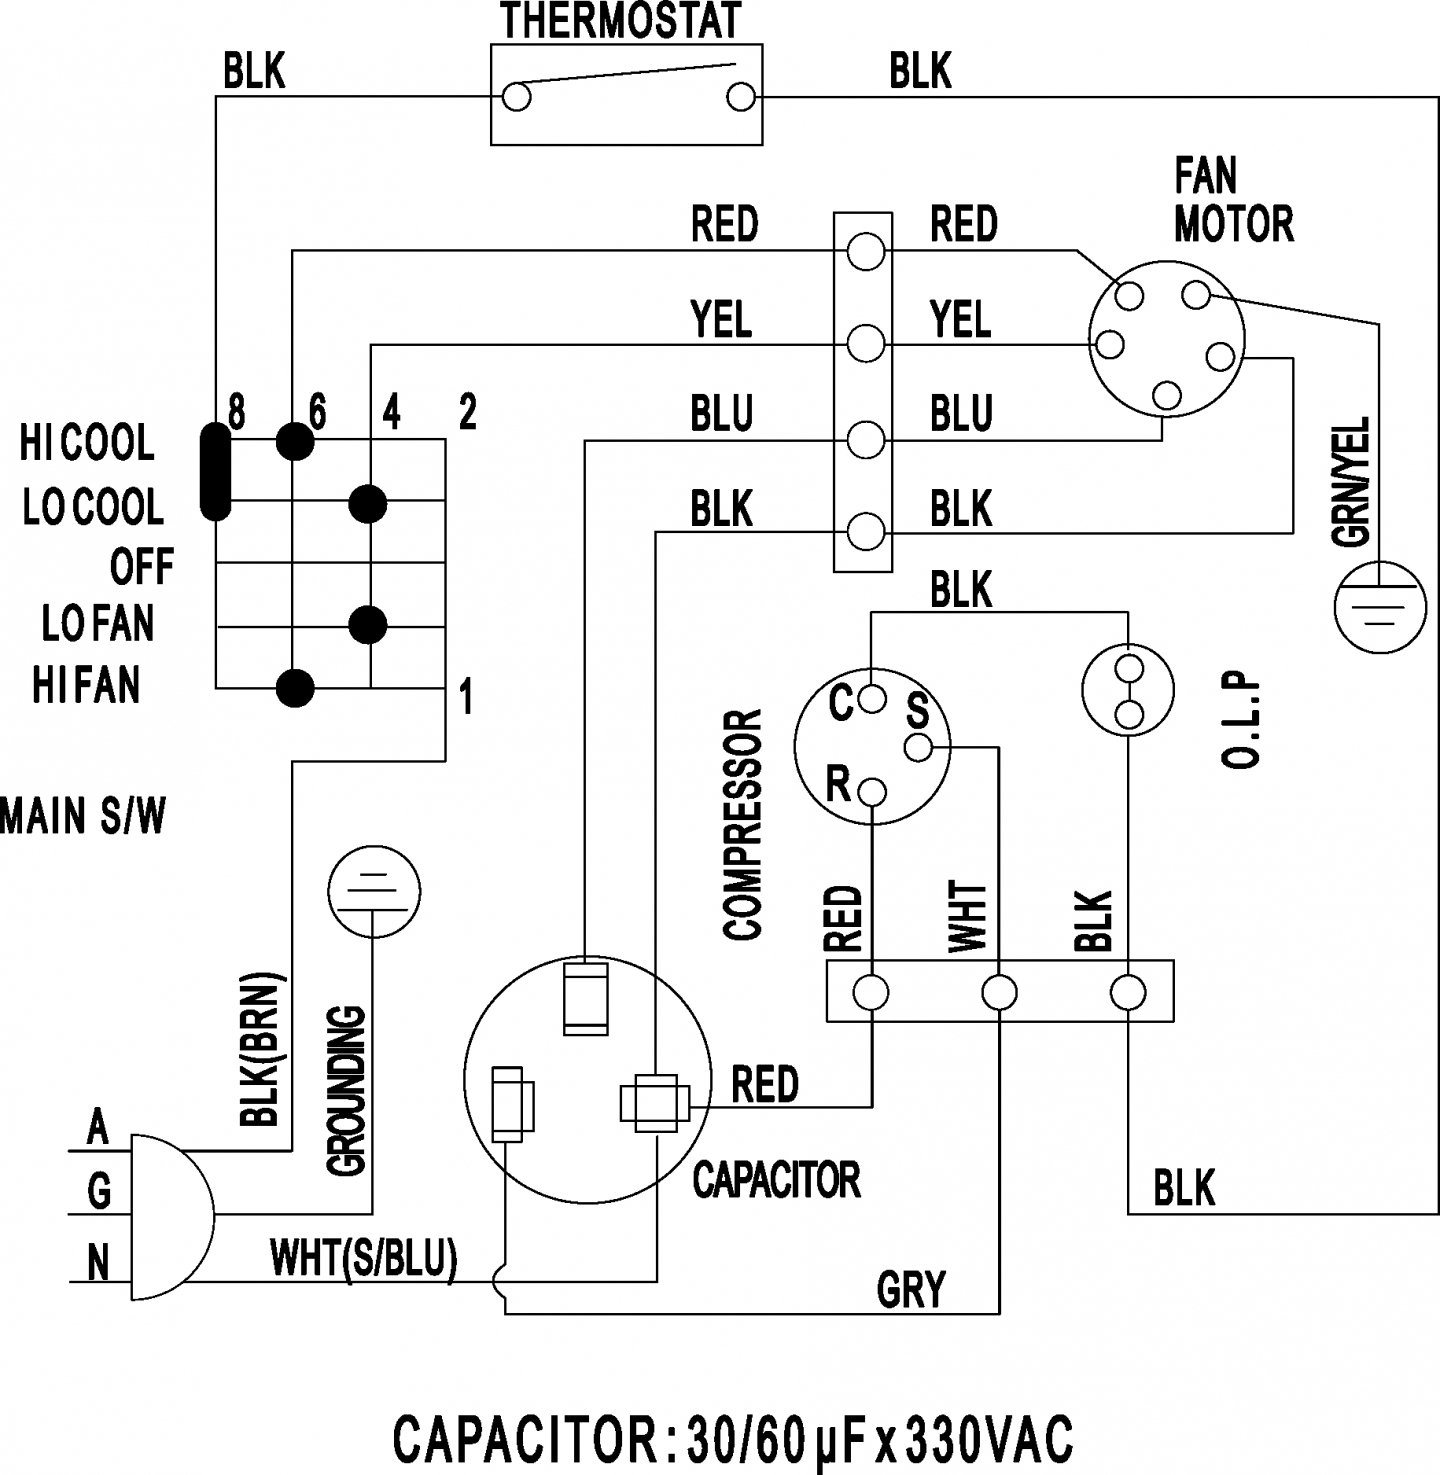 samsung air source heat pump wiring diagram